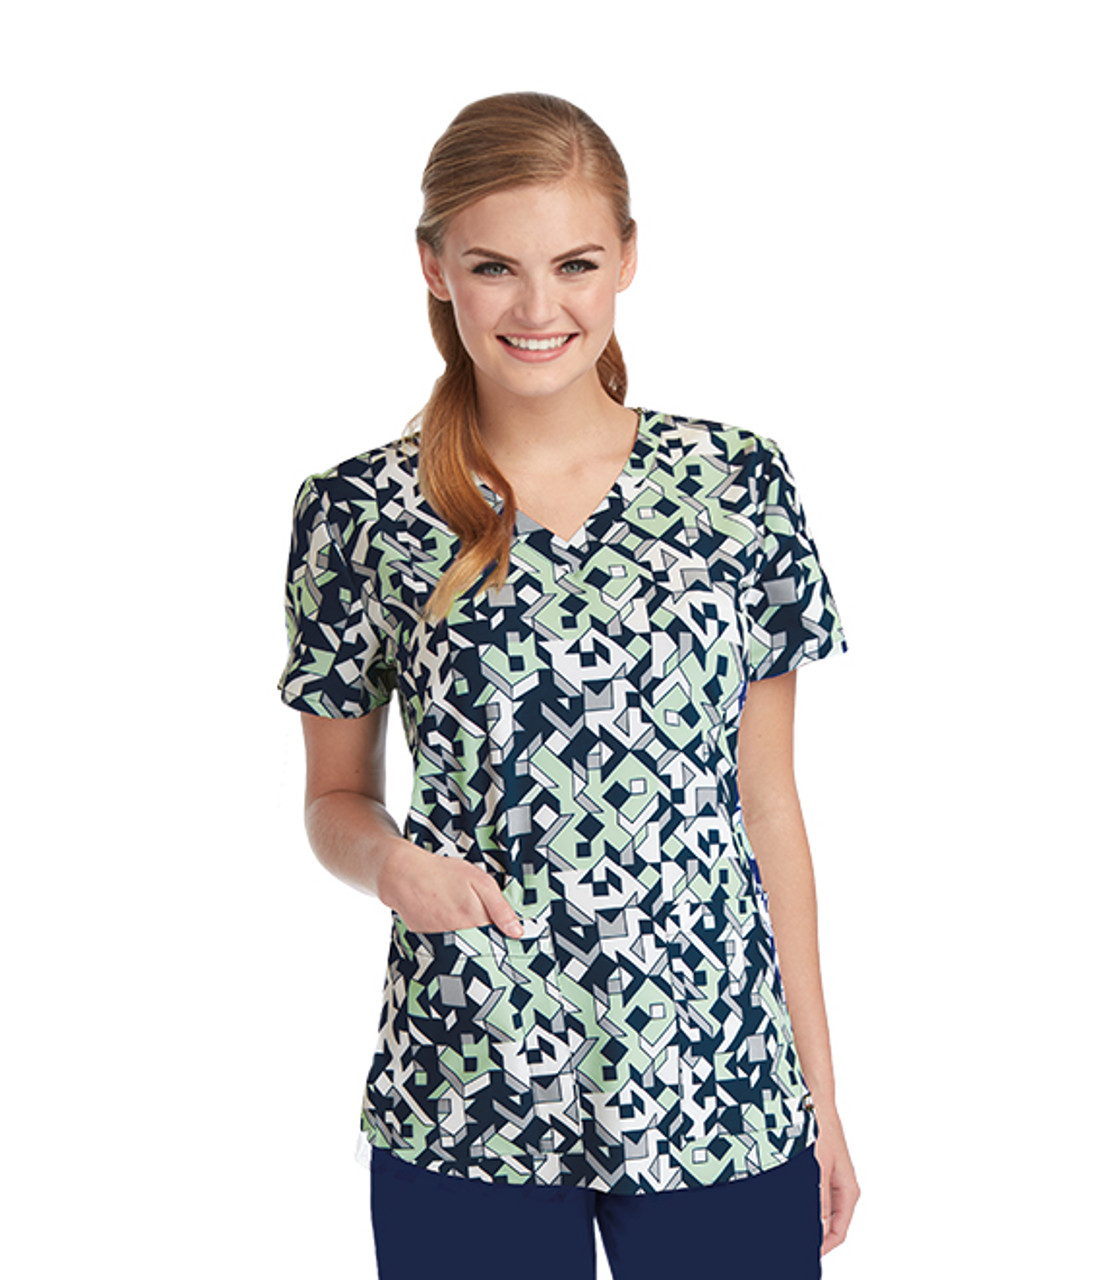 (41386-CPZ) Grey's Anatomy Scrubs - Crystal Puzzle Print V-Neck Top with Shirring Detail